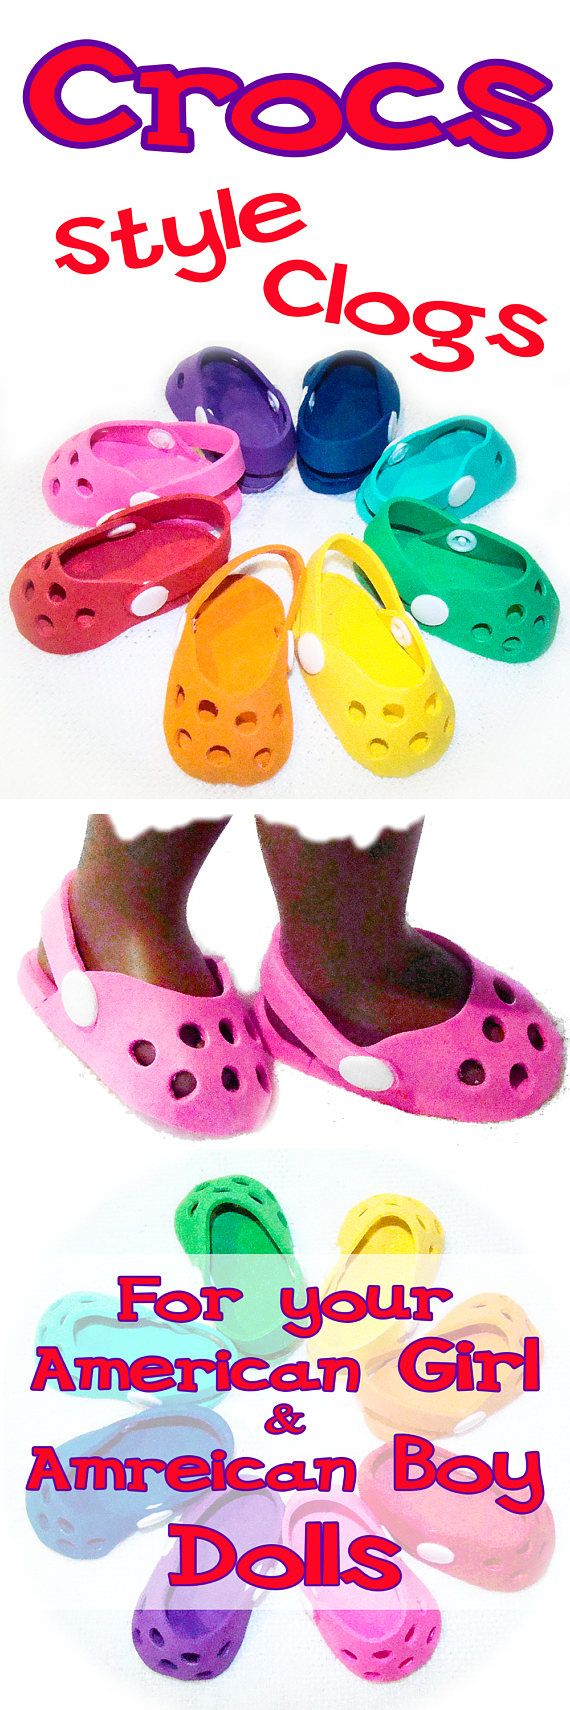 """Crocs Style Shoes for American Girl Doll, American Boy Doll or Most 18"""" Style Doll's Outfits - Doll Accessories, Doll Clothes, Doll Shoes ---- Buy 2 or more pair, get 20% off by using the coupon code """"CROCS20"""""""